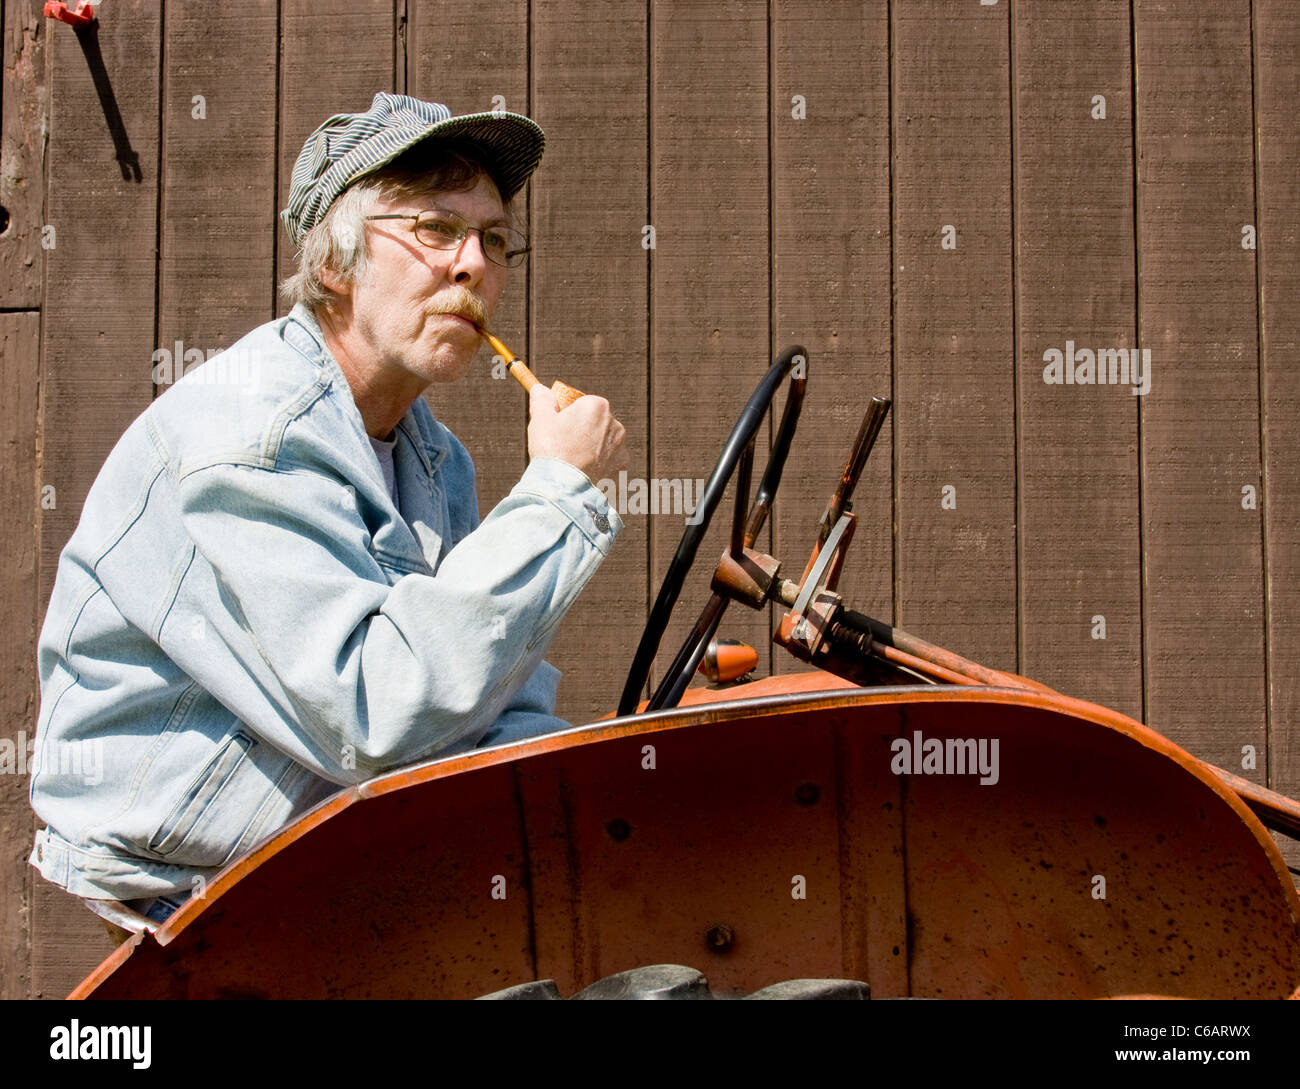 Pipe Smoking Farmer Stock Photos   Pipe Smoking Farmer Stock Images ... 803c42550a36